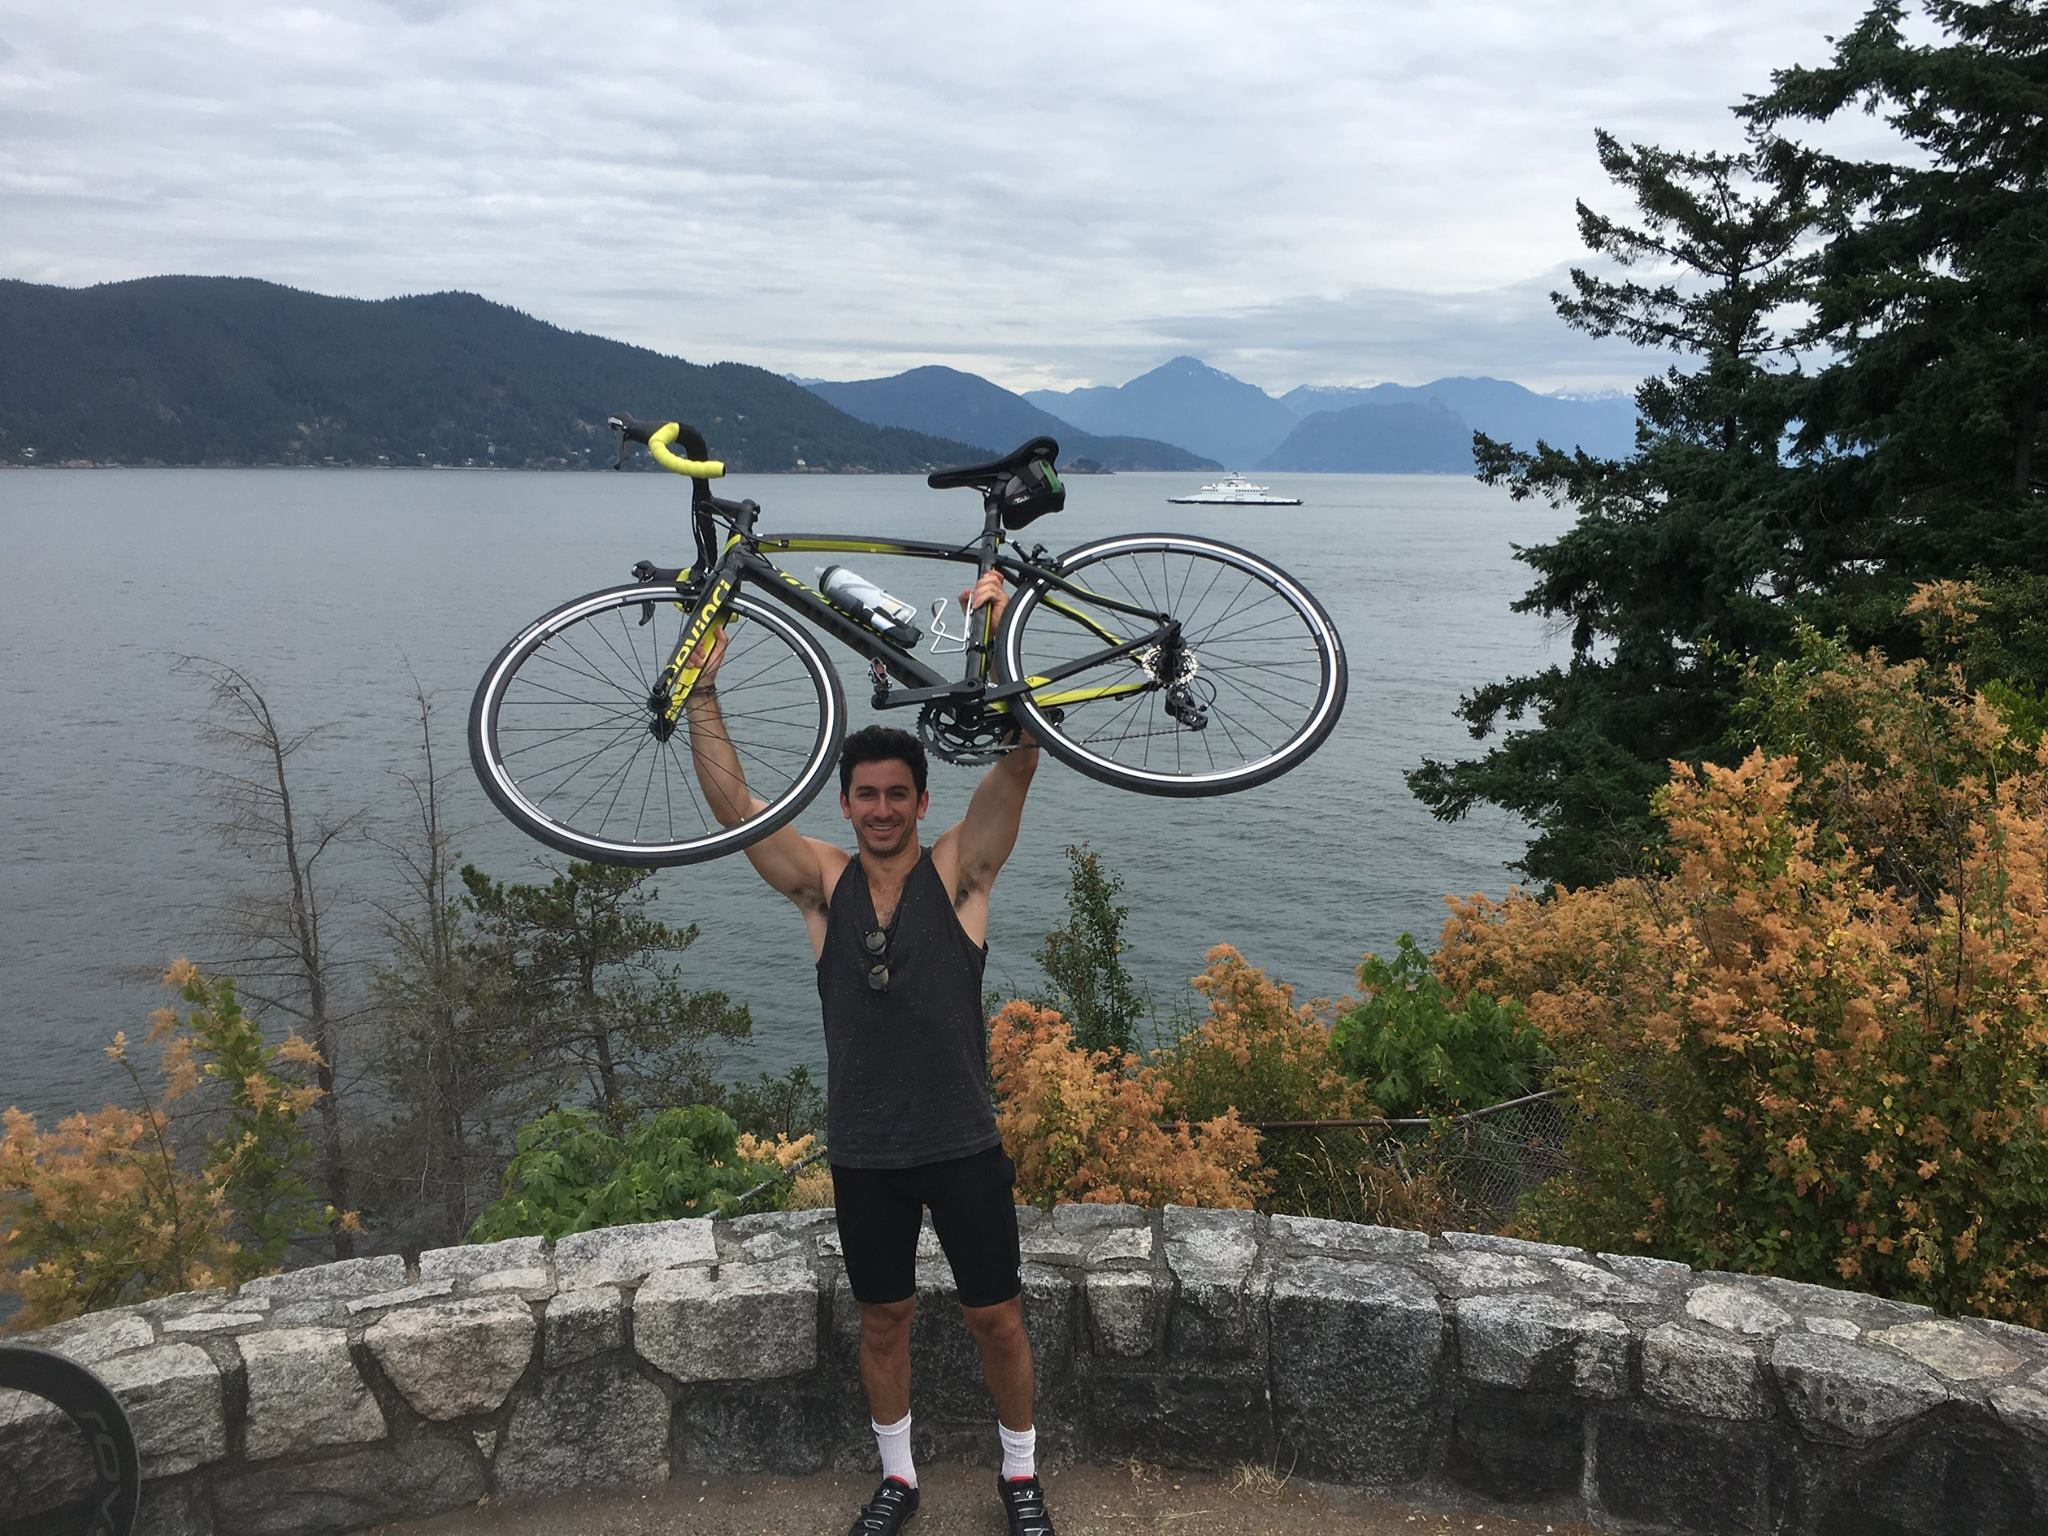 Spent an entire day biking around Vancouver and through the hills of Northern Vancouver